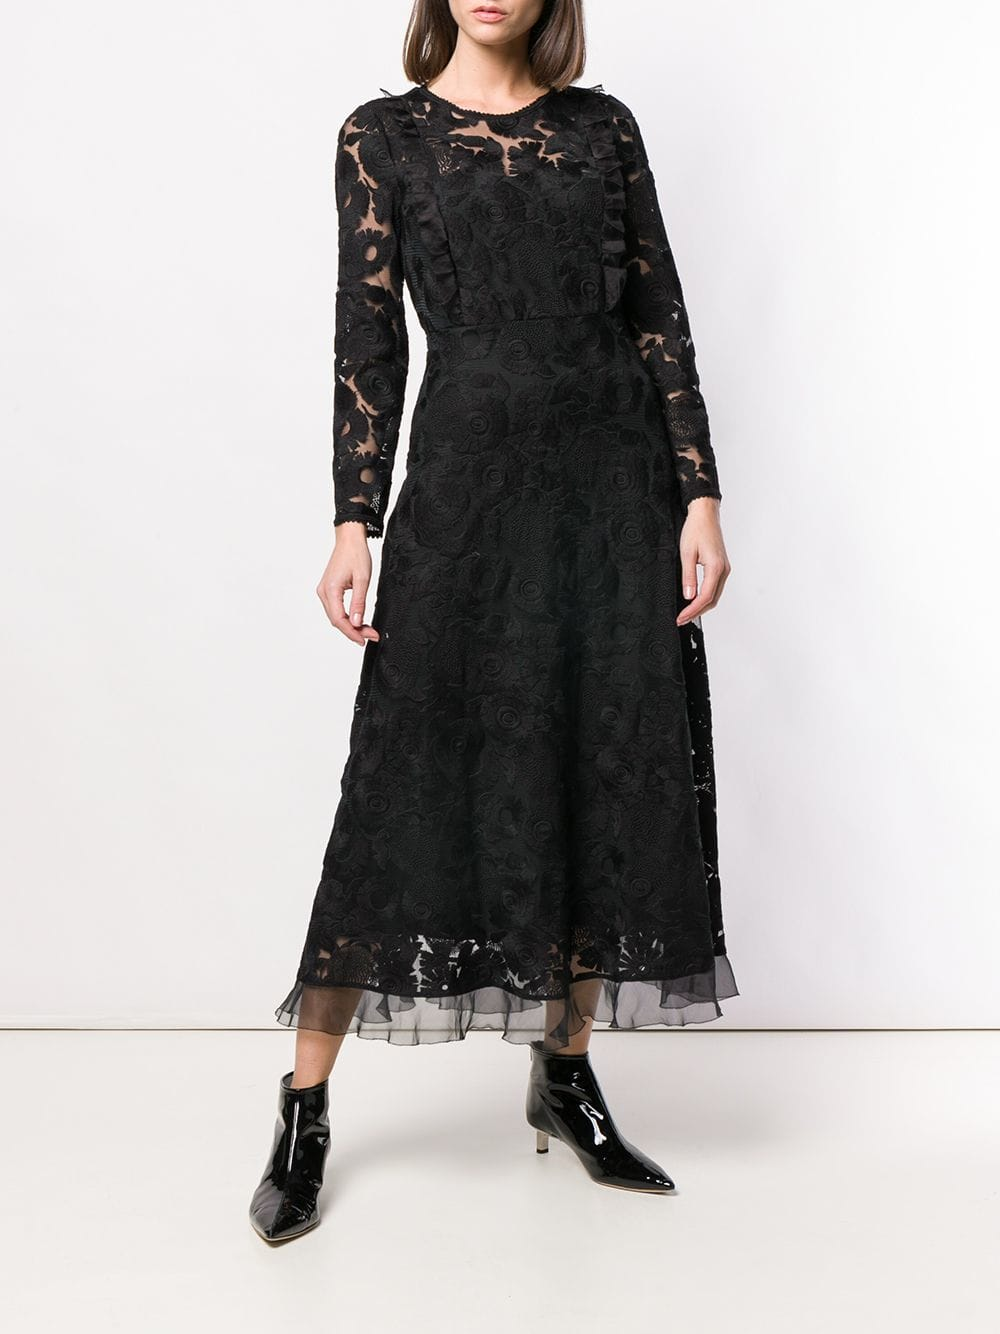 Red Valentino Long Sleeved Lace Black Dress